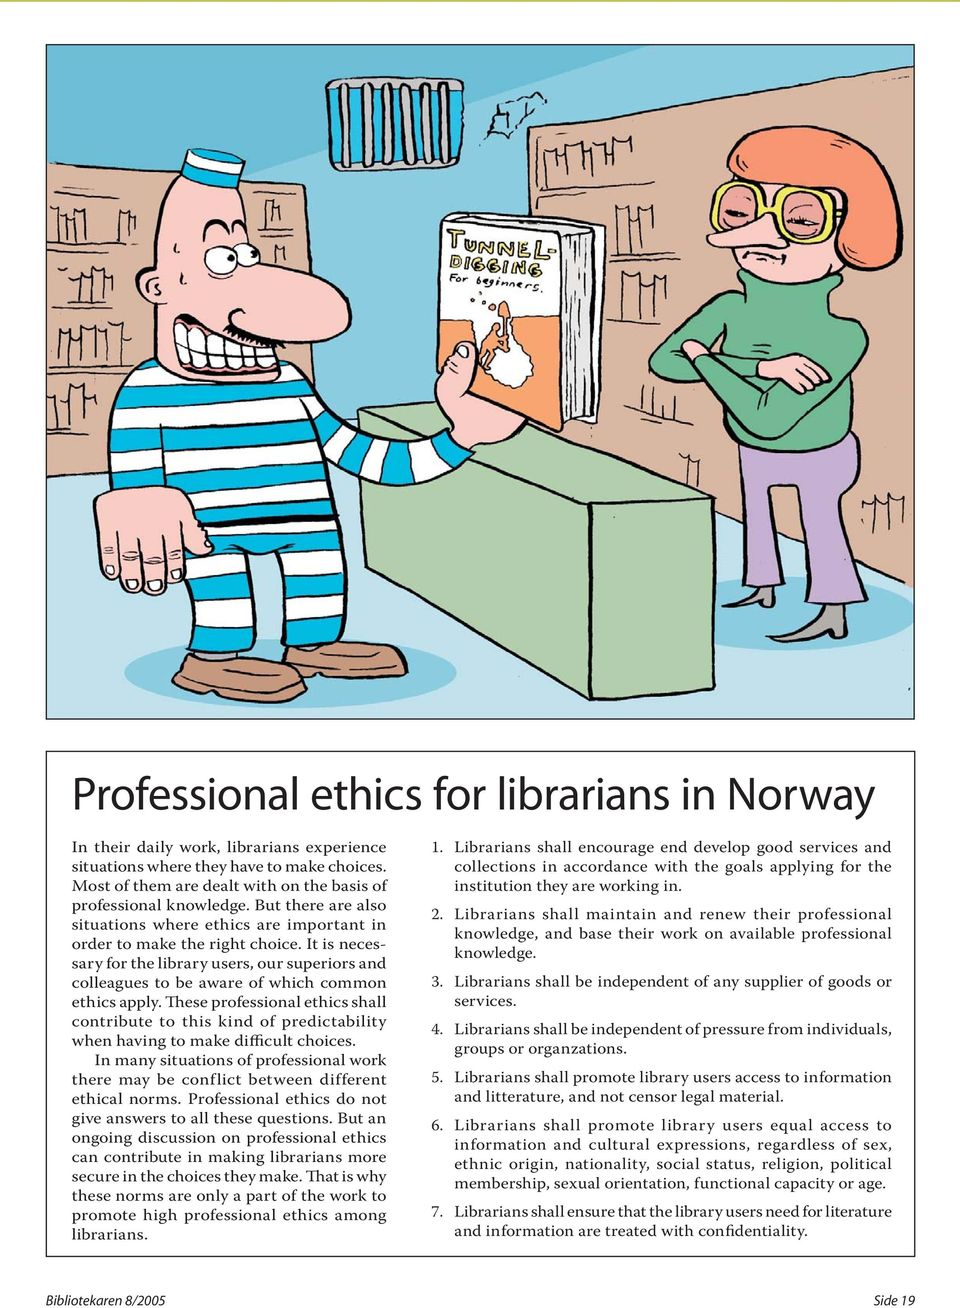 It is necessary for the library users, our superiors and colleagues to be aware of which common ethics apply.